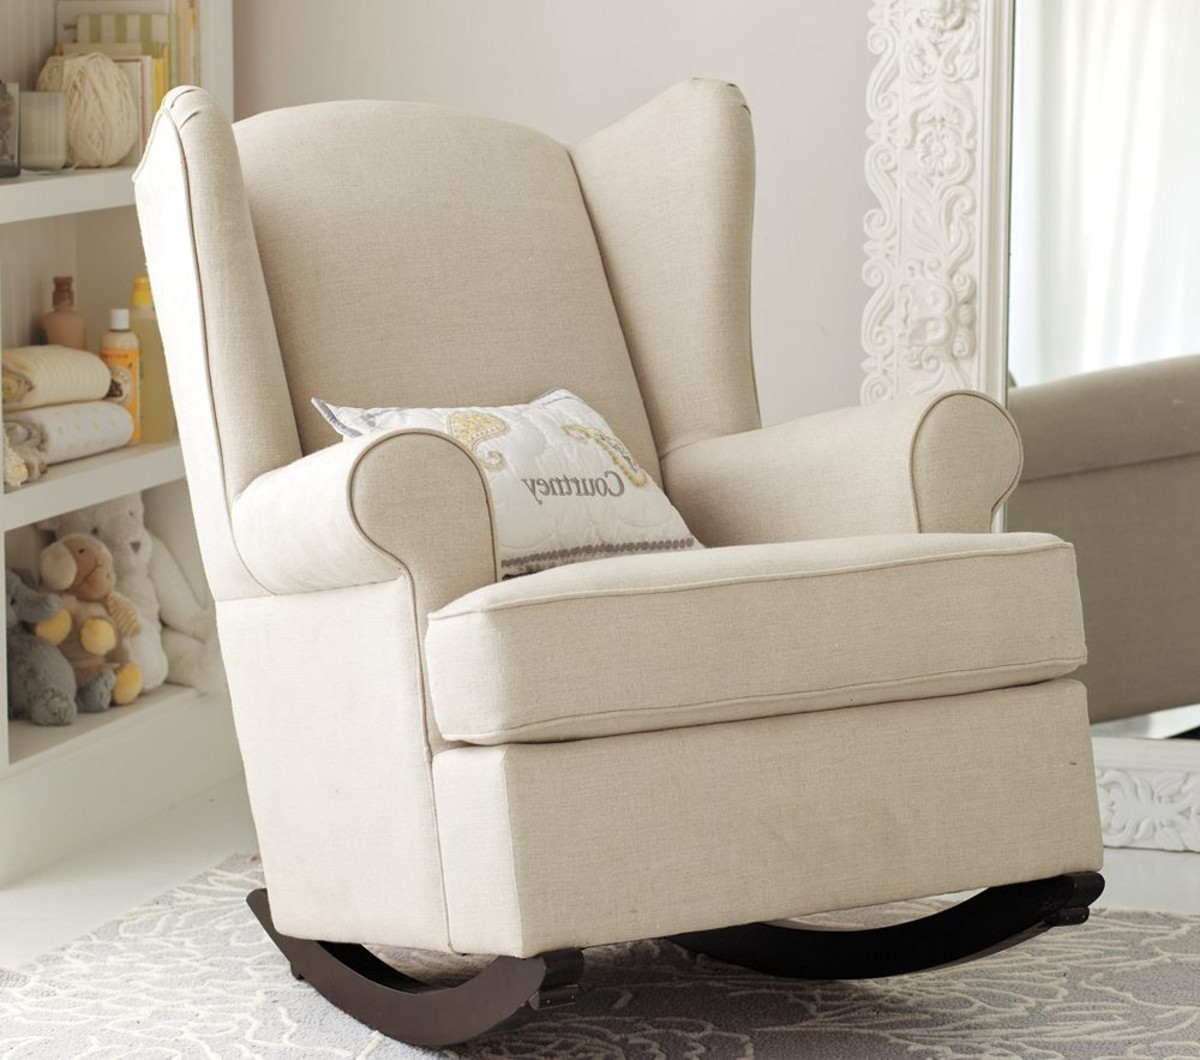 Most Popular Rocking Chairs For Baby Room Pertaining To Rocking Chair For Nursery : Milton Milano Designs – Rocking Chair (View 6 of 15)